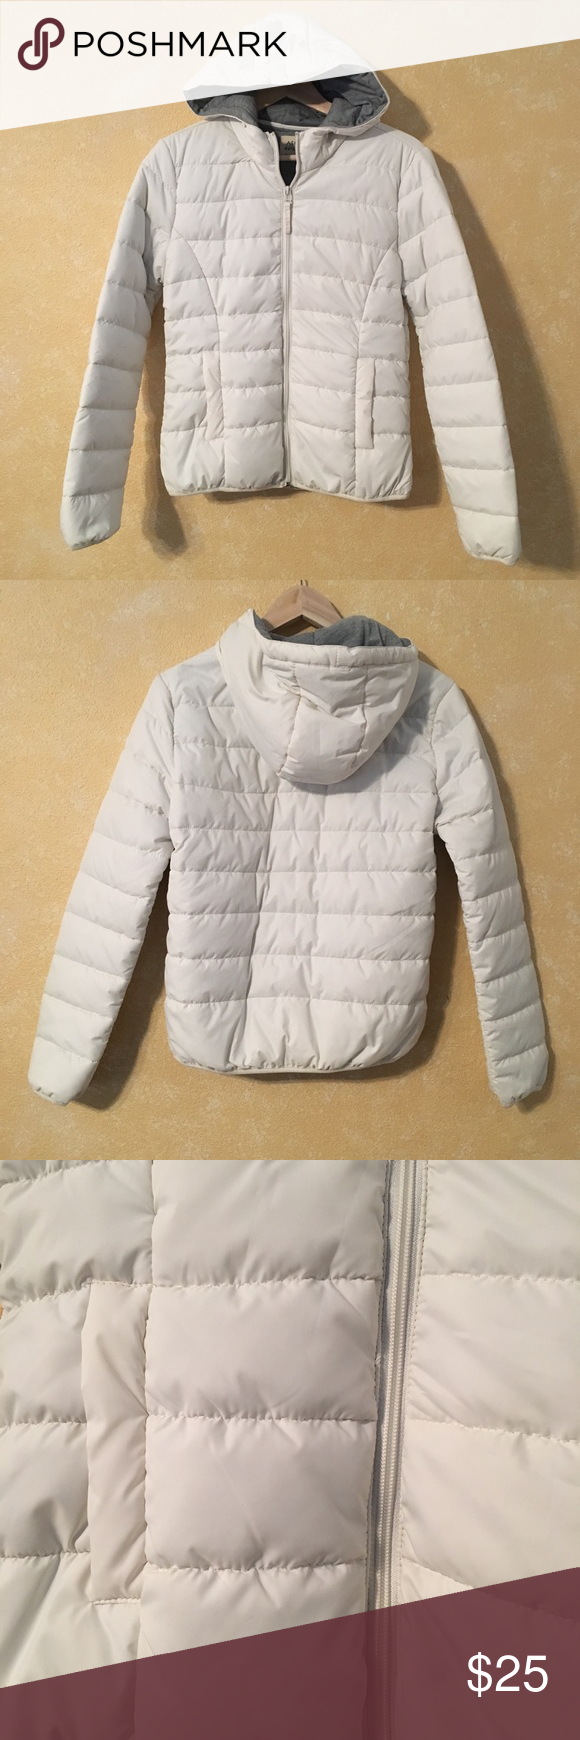 Ashley Outerwear Hooded Puffer Jacket Clothes Design Outerwear Jackets [ 1740 x 580 Pixel ]